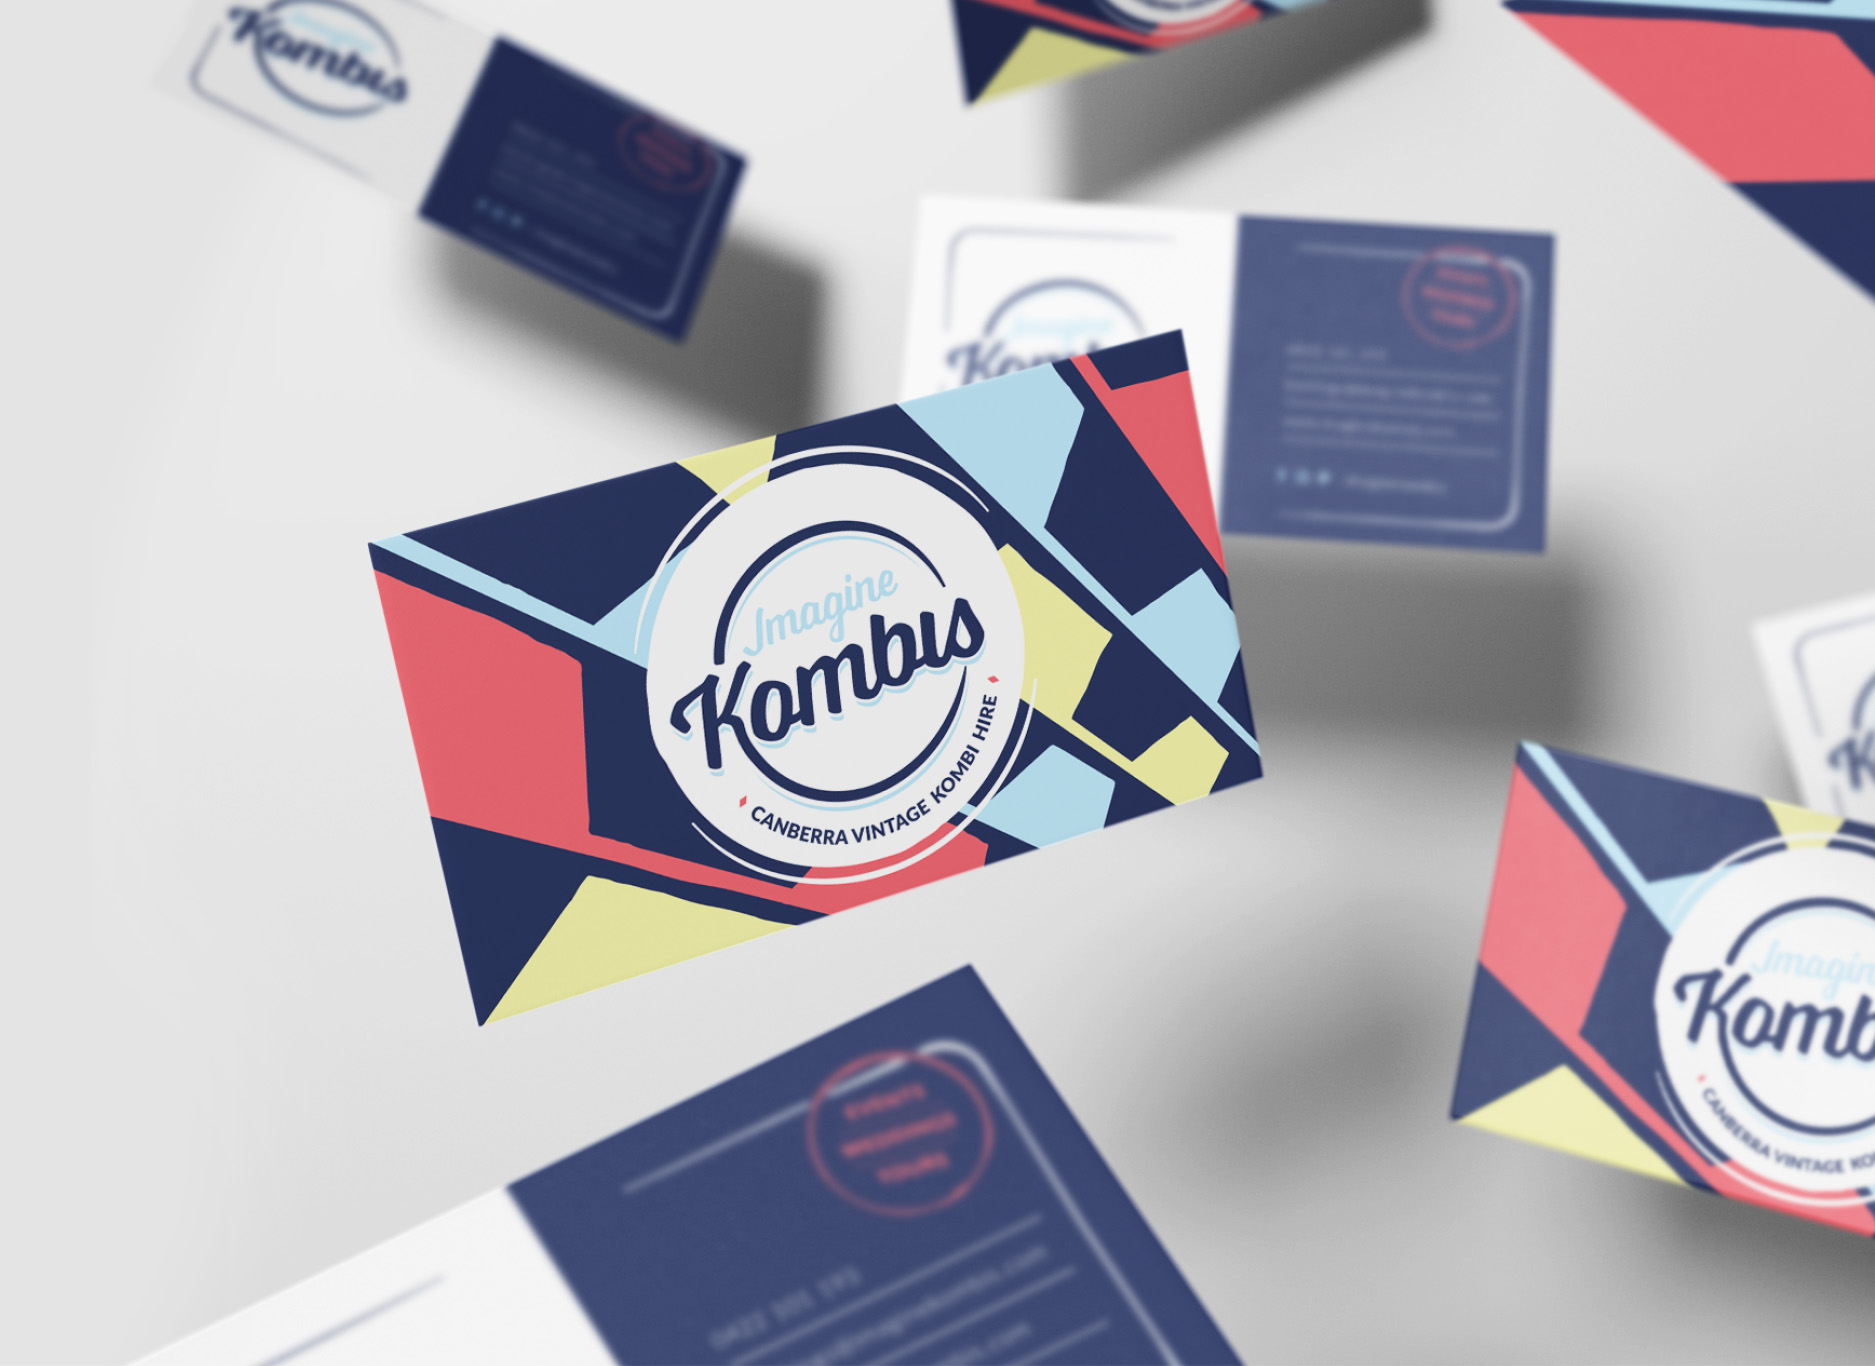 Imagine Kombis, branding and business card design, by 372 Digital